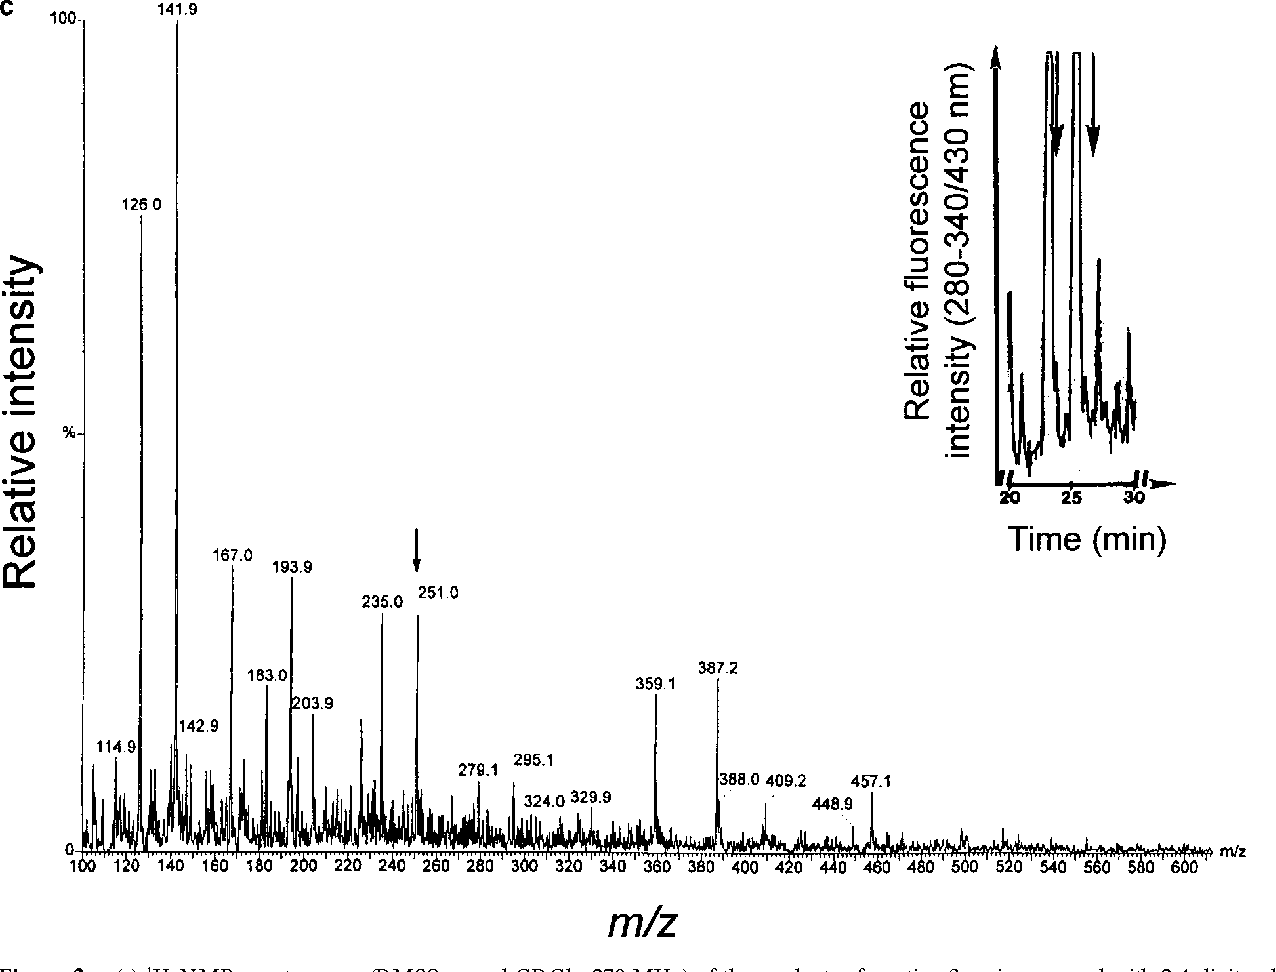 Figure 2. (a) 1H-NMR spectroscopy (DMSO-d6 and CDCl3, 270 MHz) of the products of reacting 3-aminopropanal with 2,4-dinitrophenylhydrazine. NMR revealed the presence of anti and syn isomers with resonance at d8.83 and d11.35. (Inset) Structure of the principle condensation products. (b) Electrospray ionization mass spectrum of synthetic dansylated 3-aminopropanal-2,4-dinitrophenylhydrazone. 3-aminopropanal was derivatized with 2,4- dinitrophenylhydrazine and dansyl chloride, and the reaction products were subjected to HPLC as outlined in Materials and Methods. The inset shows the HPLC profile of the separable geometric isomers. Note that the EIMS of the HPLC-purified fractions revealed the expected molecular ion at m/z 251. (c) EIMS of derivatized ischemic brain homogenate. Animals were subjected to permanent focal cerebral ischemia and after 25 h, brain tissue was obtained for homogenization and derivatization as described in Materials and Methods. The inset shows the HPLC profile, and the mass spectrum confirms the expected molecular ion of the HPLC-purified fractions at m/z 251.